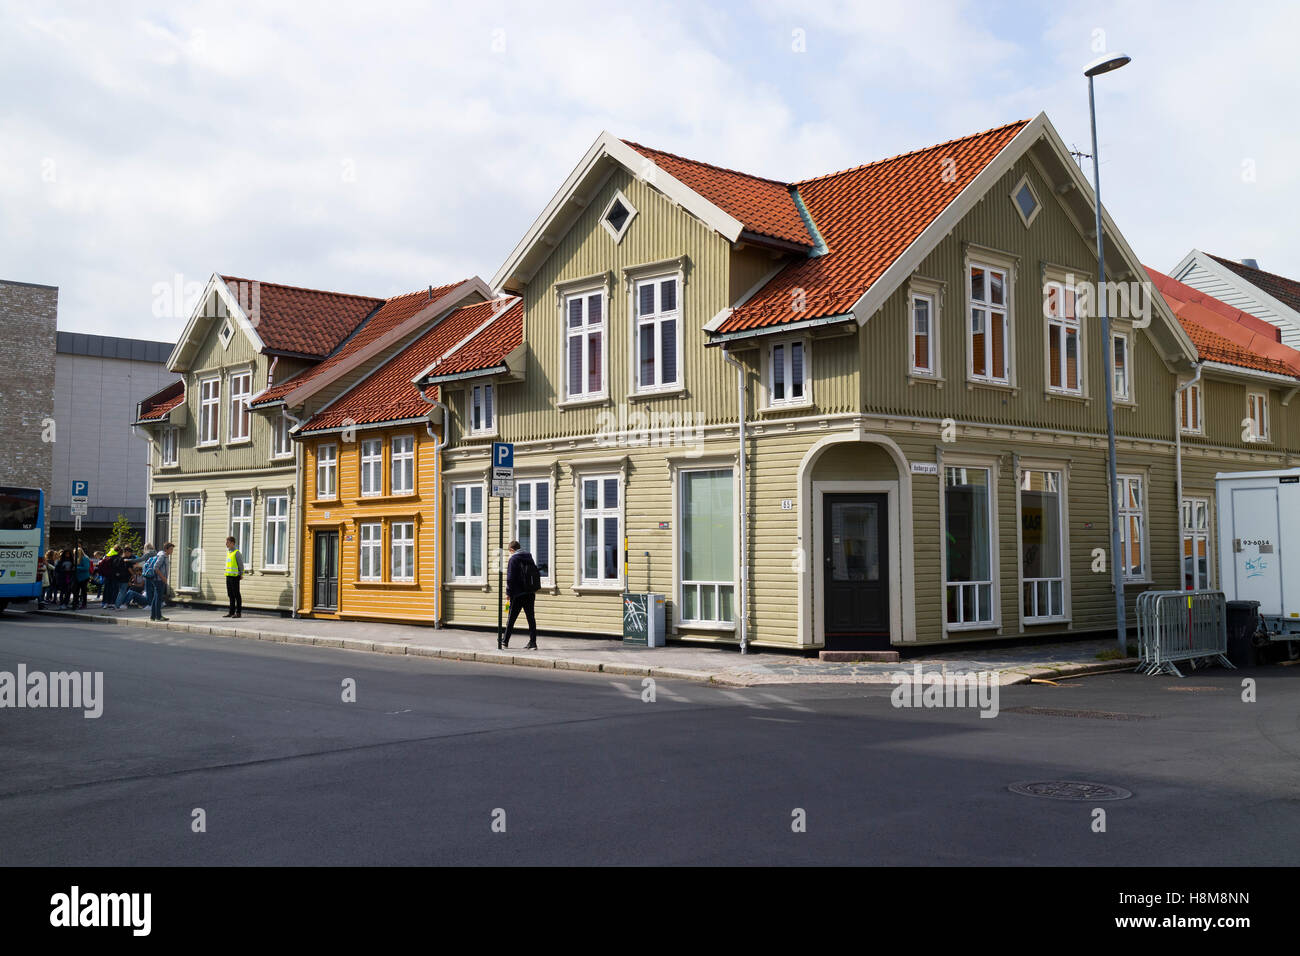 Traditional colorful wooden houses in Kristiansand, Norway - Stock Image